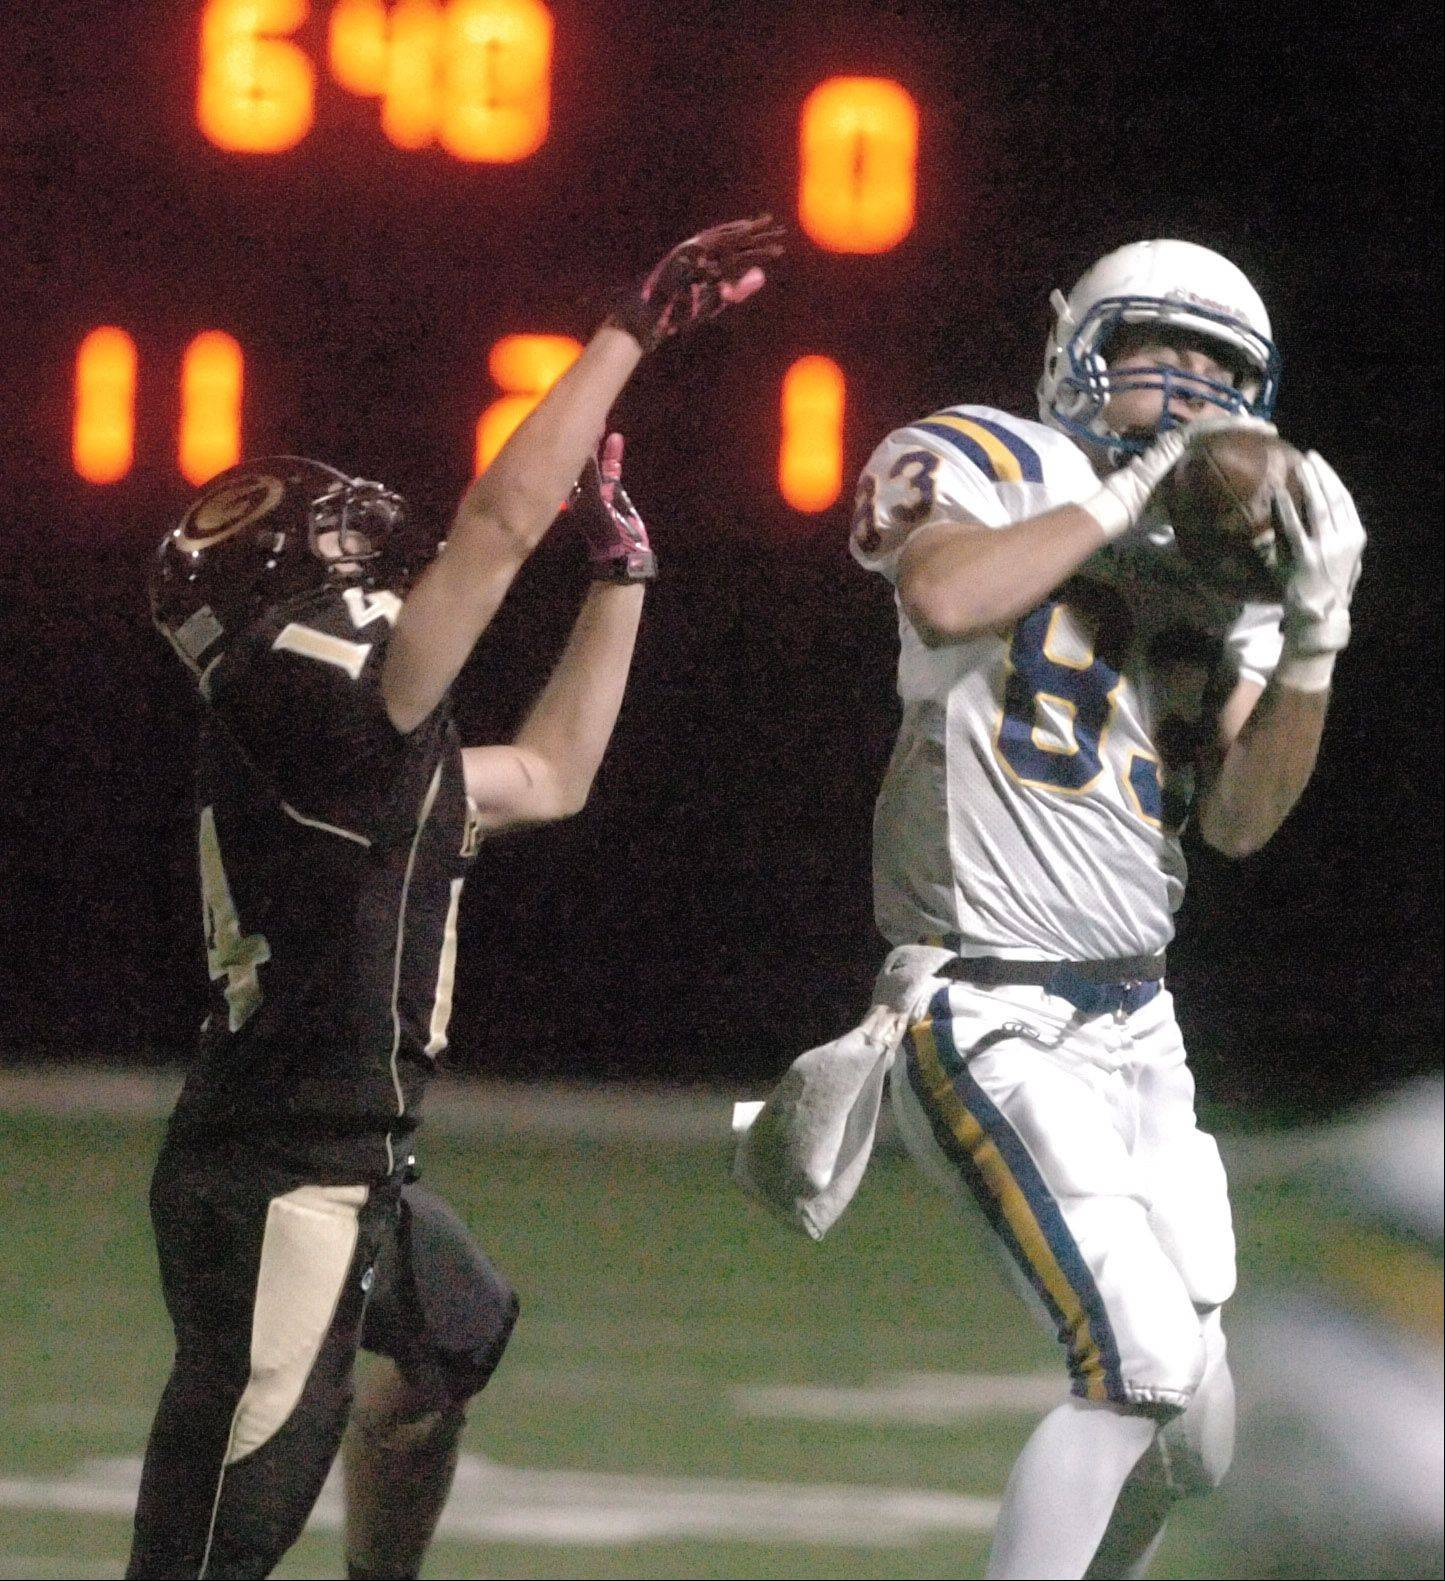 Ryan Storto of Glenbard North jumps to stop Matt Biegalski of Wheaton North.